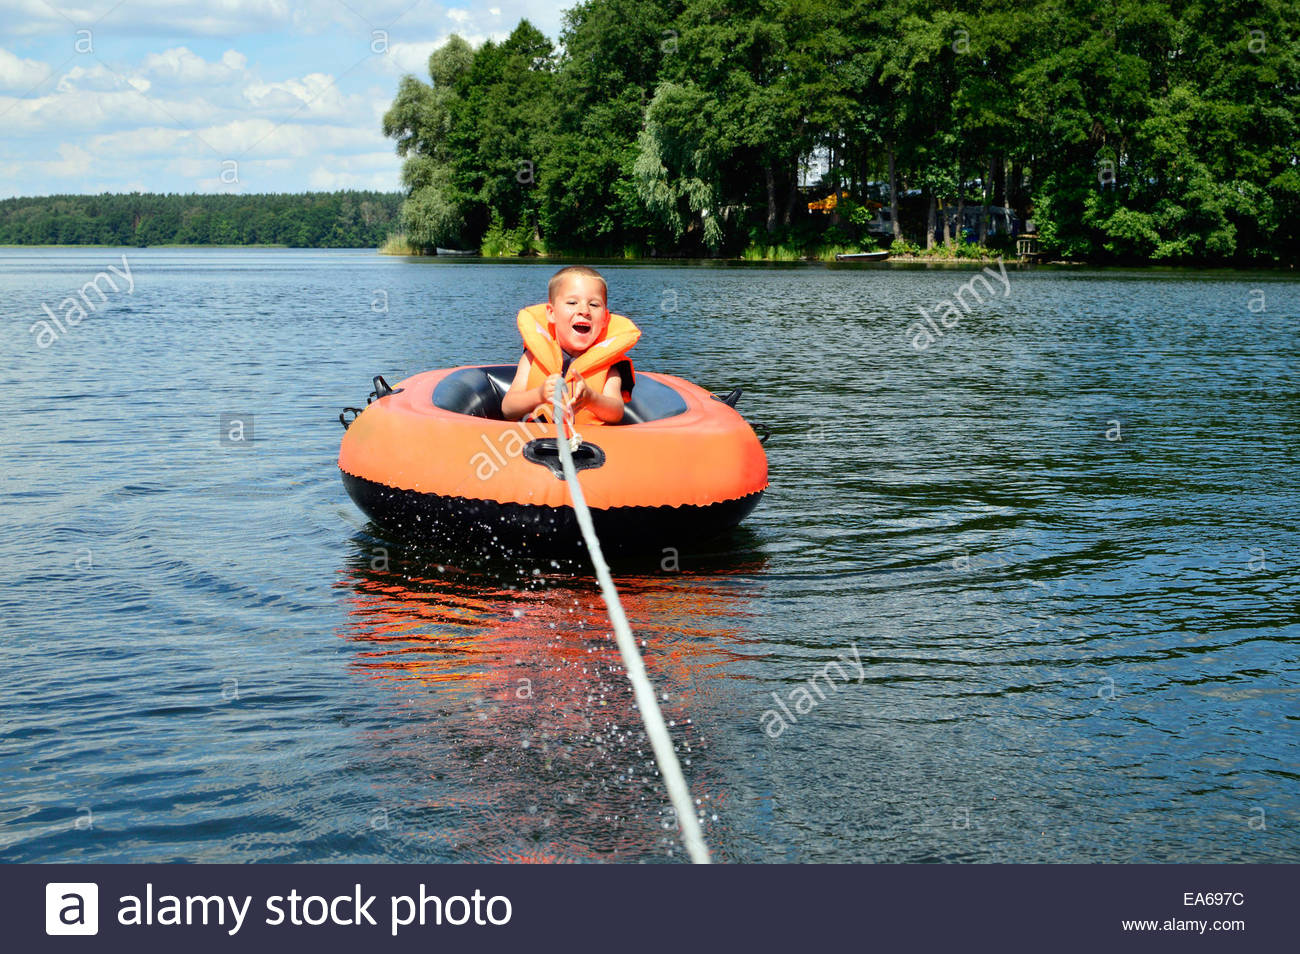 little boy drives a boat - Stock Image